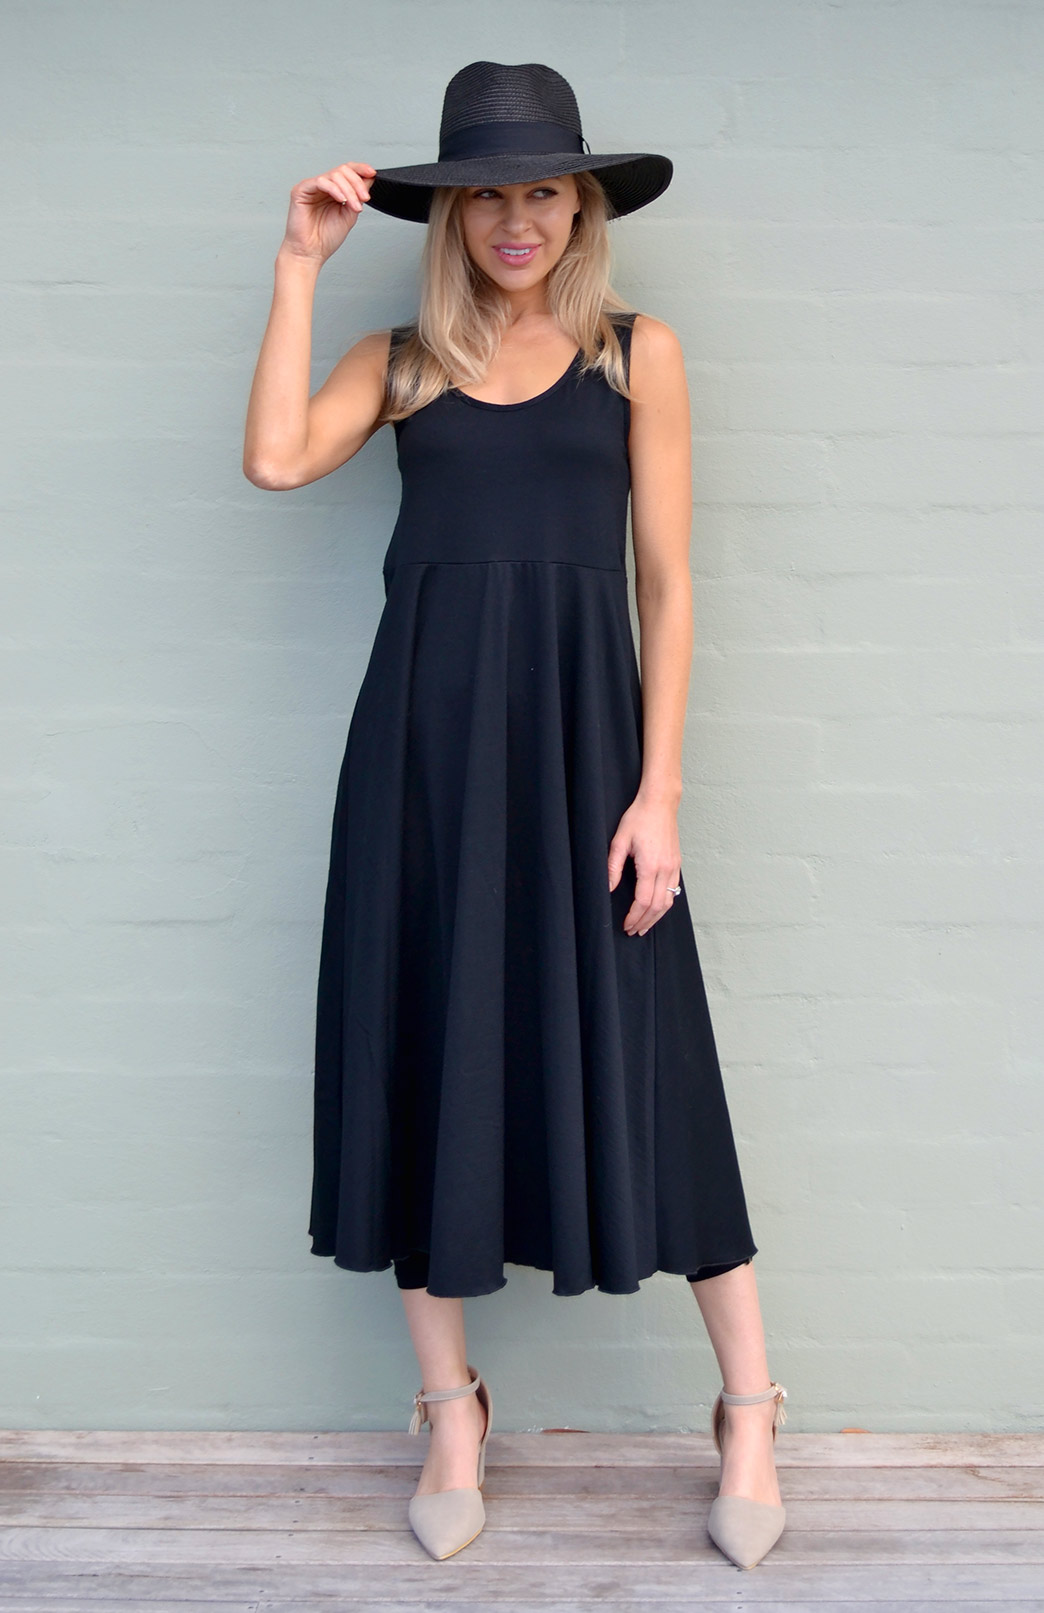 Fan Dress - Women's Black Floral Woollen Dress with empire waistline - Smitten Merino Tasmania Australia